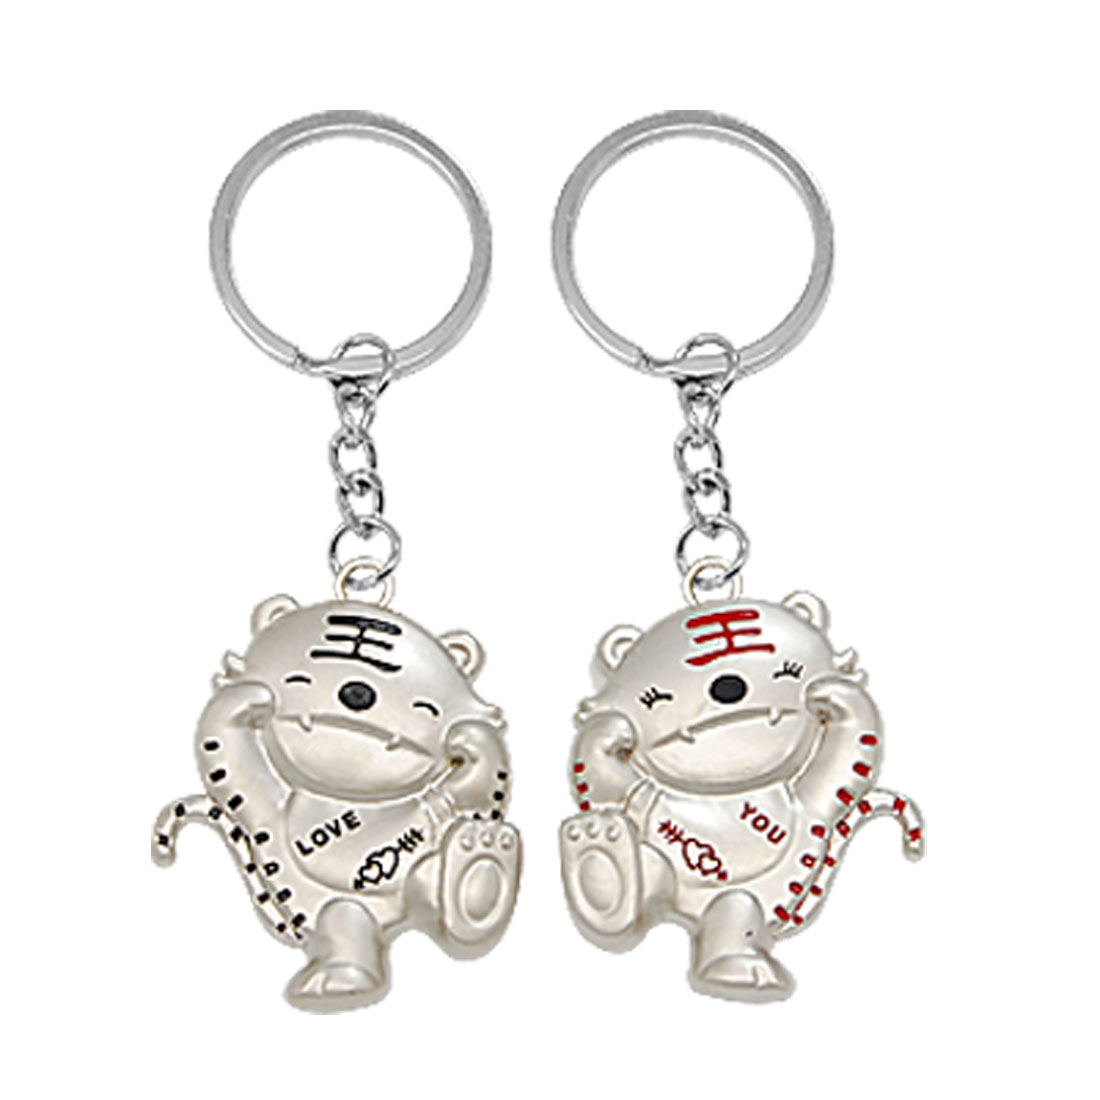 Set of 2 Tiger Style Metal Key Ring Chain Couple Keychain